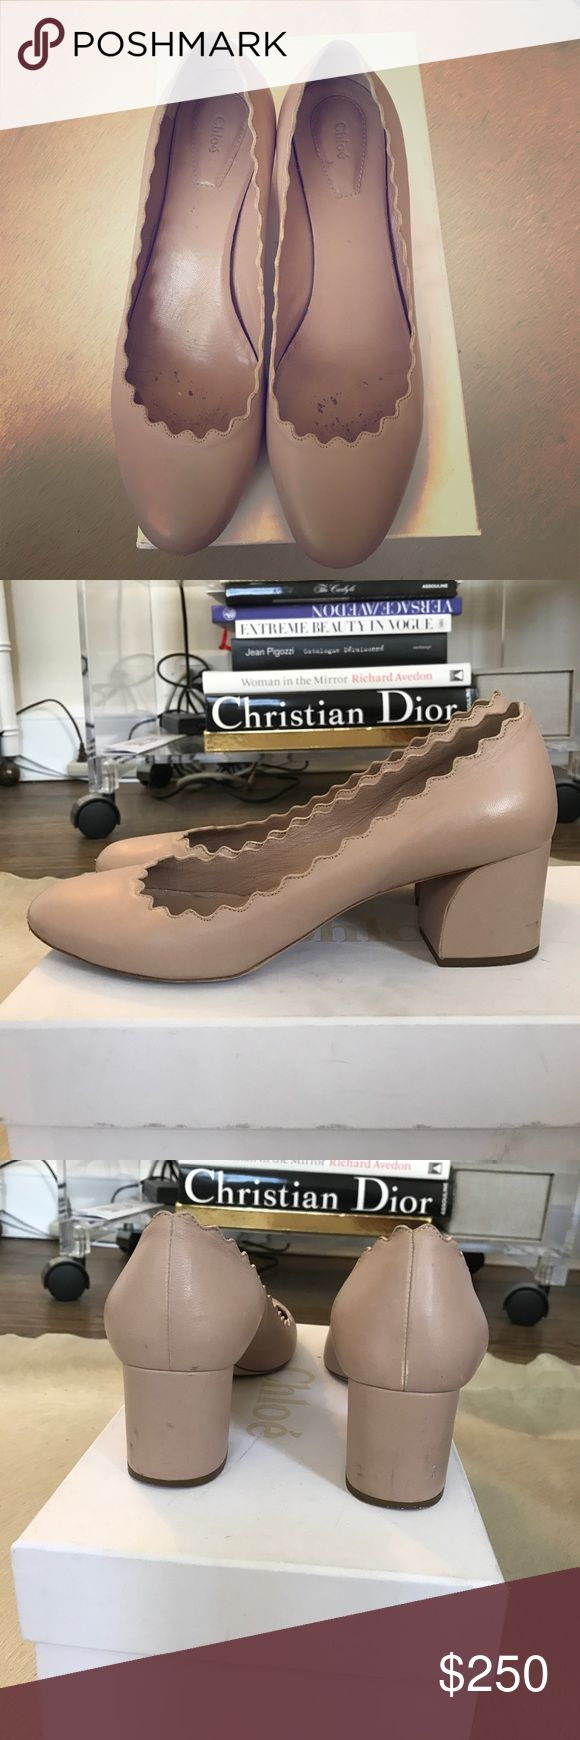 Chloe scalloped ballet pumps. Best-selling sweet pale pink/nude ballet pumps with signature scallop edge detail. 2 inch sculpted block heel. Super comfy and they disappear on the foot so pair well with absolutely everything! Amazing with well worn jeans, little black dress, or a mini skirt and a tan. They have scuffs and wear as pictured so please check photos carefully; however nothing a little TLC can't fix, and they are perfectly presentable to wear right away. Size 6.5 - very true to…